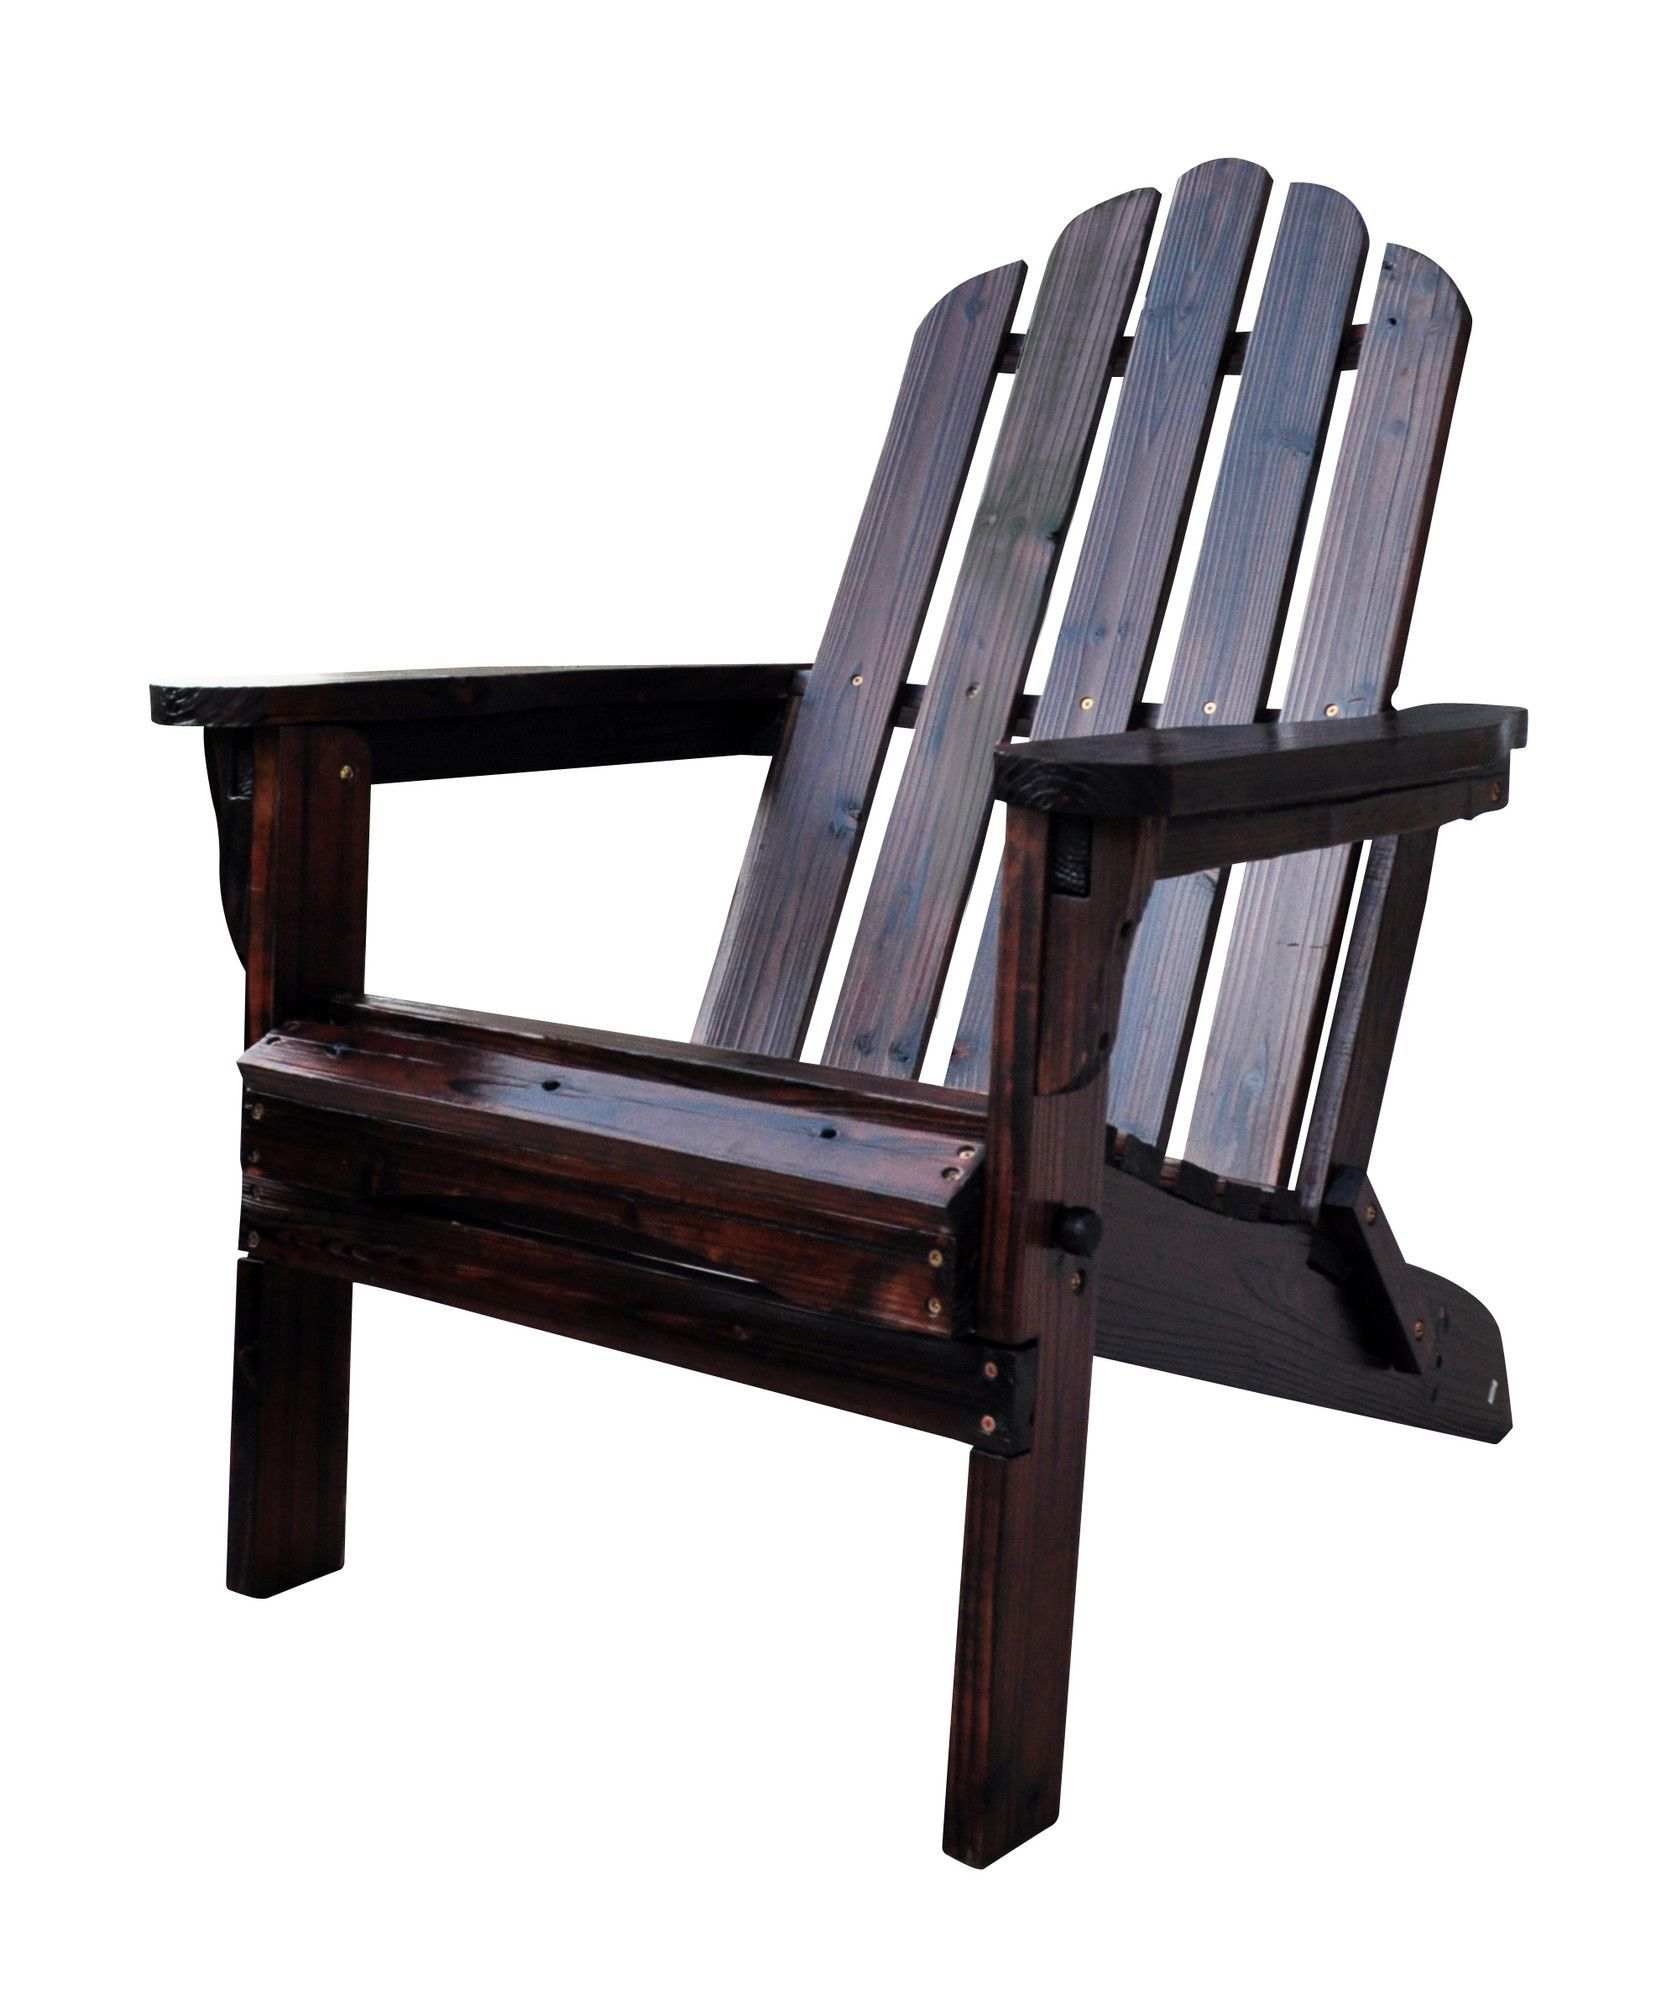 Cuyler Solid Wood Folding Adirondack Chair Folding chair